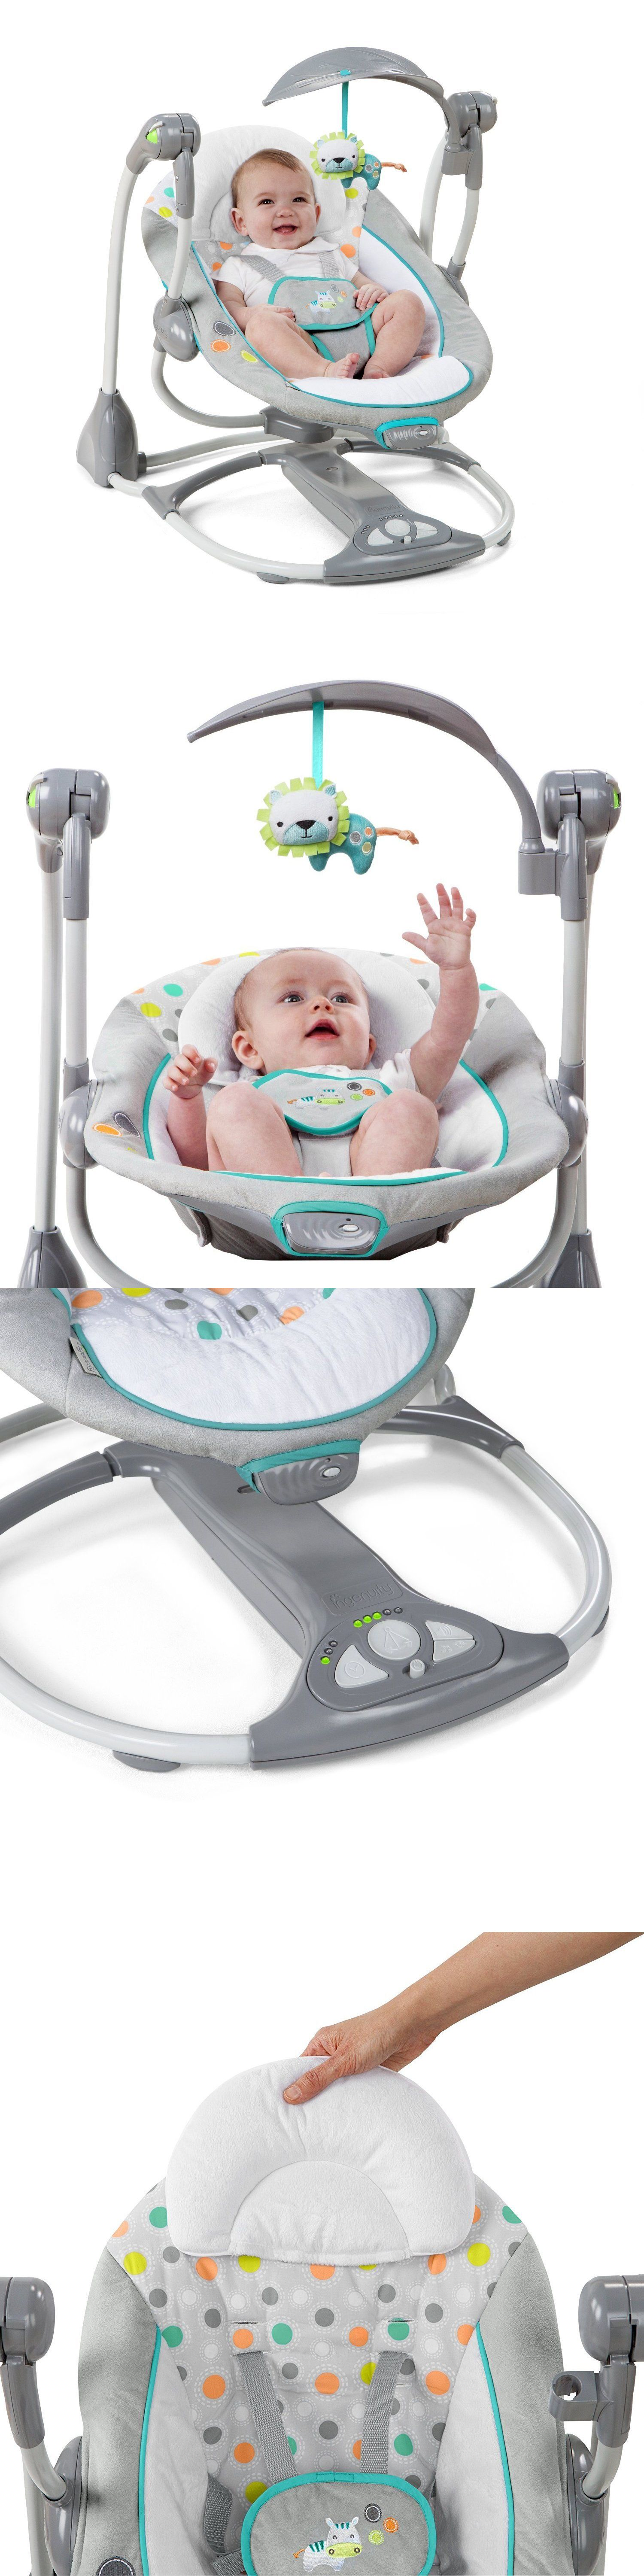 Baby Baby Swing 2 Seat Infant Toddler Rocker Chair Little